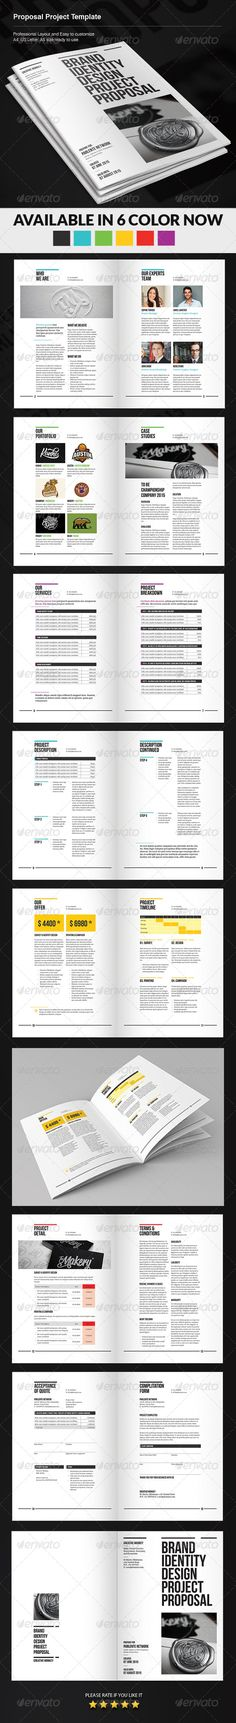 Proposal & Invoice Template  Makery  kanhe  frisky  champur  winery  austin  bear      Created: 1June13 GraphicsFilesIncluded: InDesignINDD Layered: Yes MinimumAdobeCSVersion: CS4 PrintDimensions: 8.5x11 Tags: